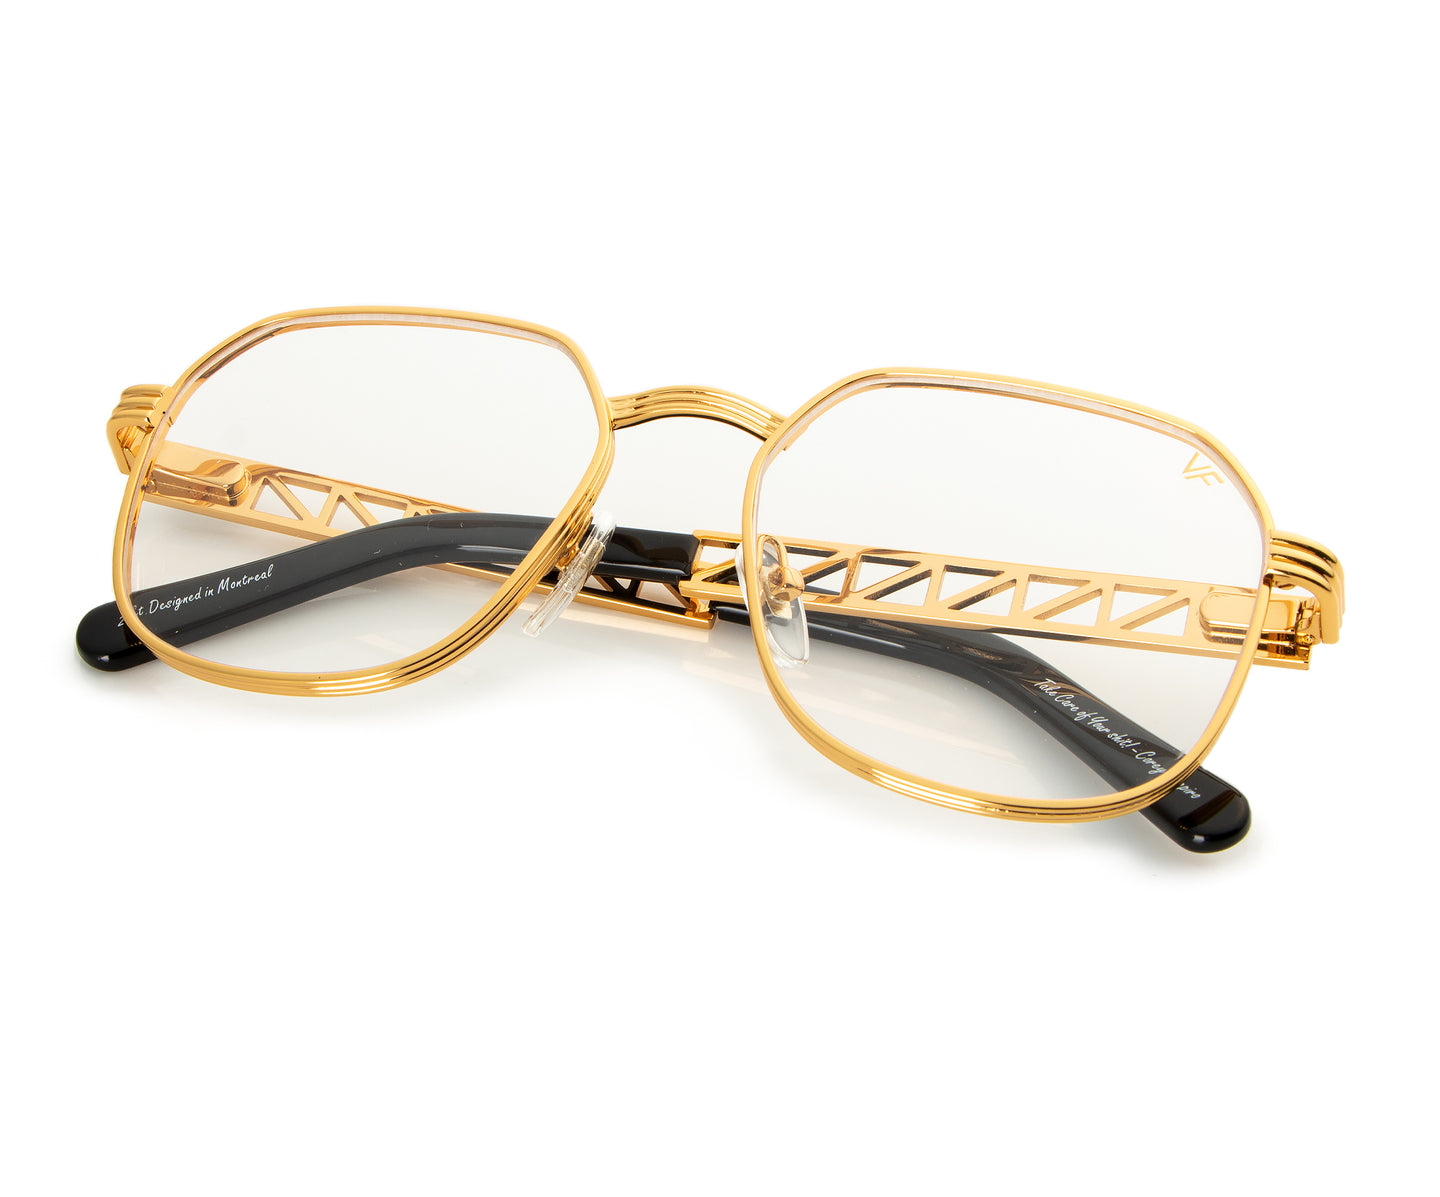 VF Jacques Cartier CEO 24KT Gold (Clear), VF Masterpiece , glasses frames, eyeglasses online, eyeglass frames, mens glasses, womens glasses, buy glasses online, designer eyeglasses, vintage sunglasses, retro sunglasses, vintage glasses, sunglass, eyeglass, glasses, lens, vintage frames company, vf